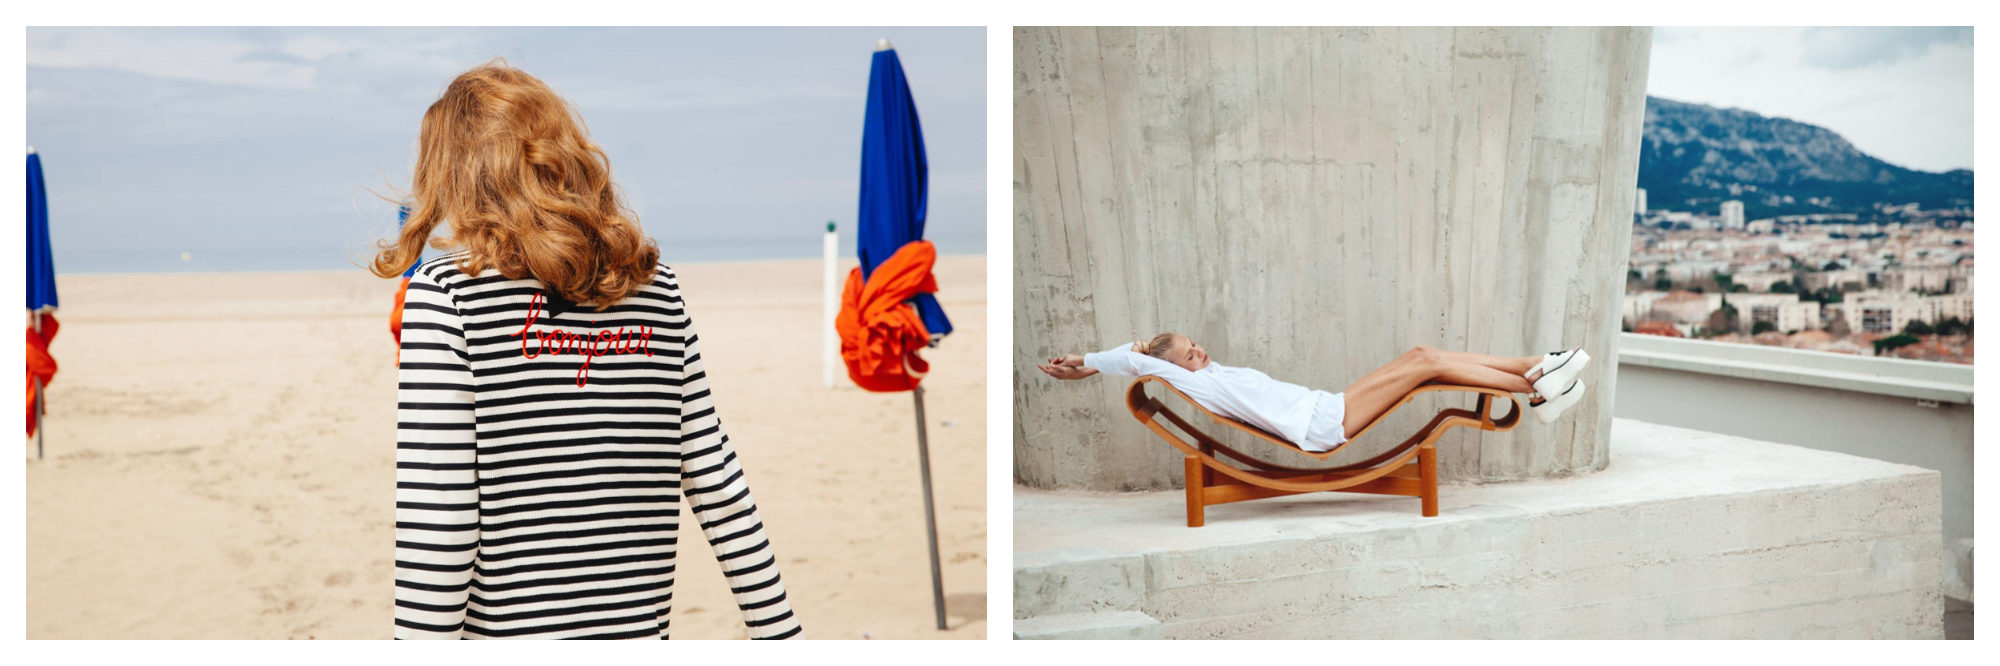 A stripy 'Bonjour' long-sleeved t-shirt worn by a woman walking on Deauville beach (left). A woman wearing a white outfit and platform shoes stretched out on a curved lounger close to a concrete structure with a town in the background (right), both from French fashion brand JOUR/NE.